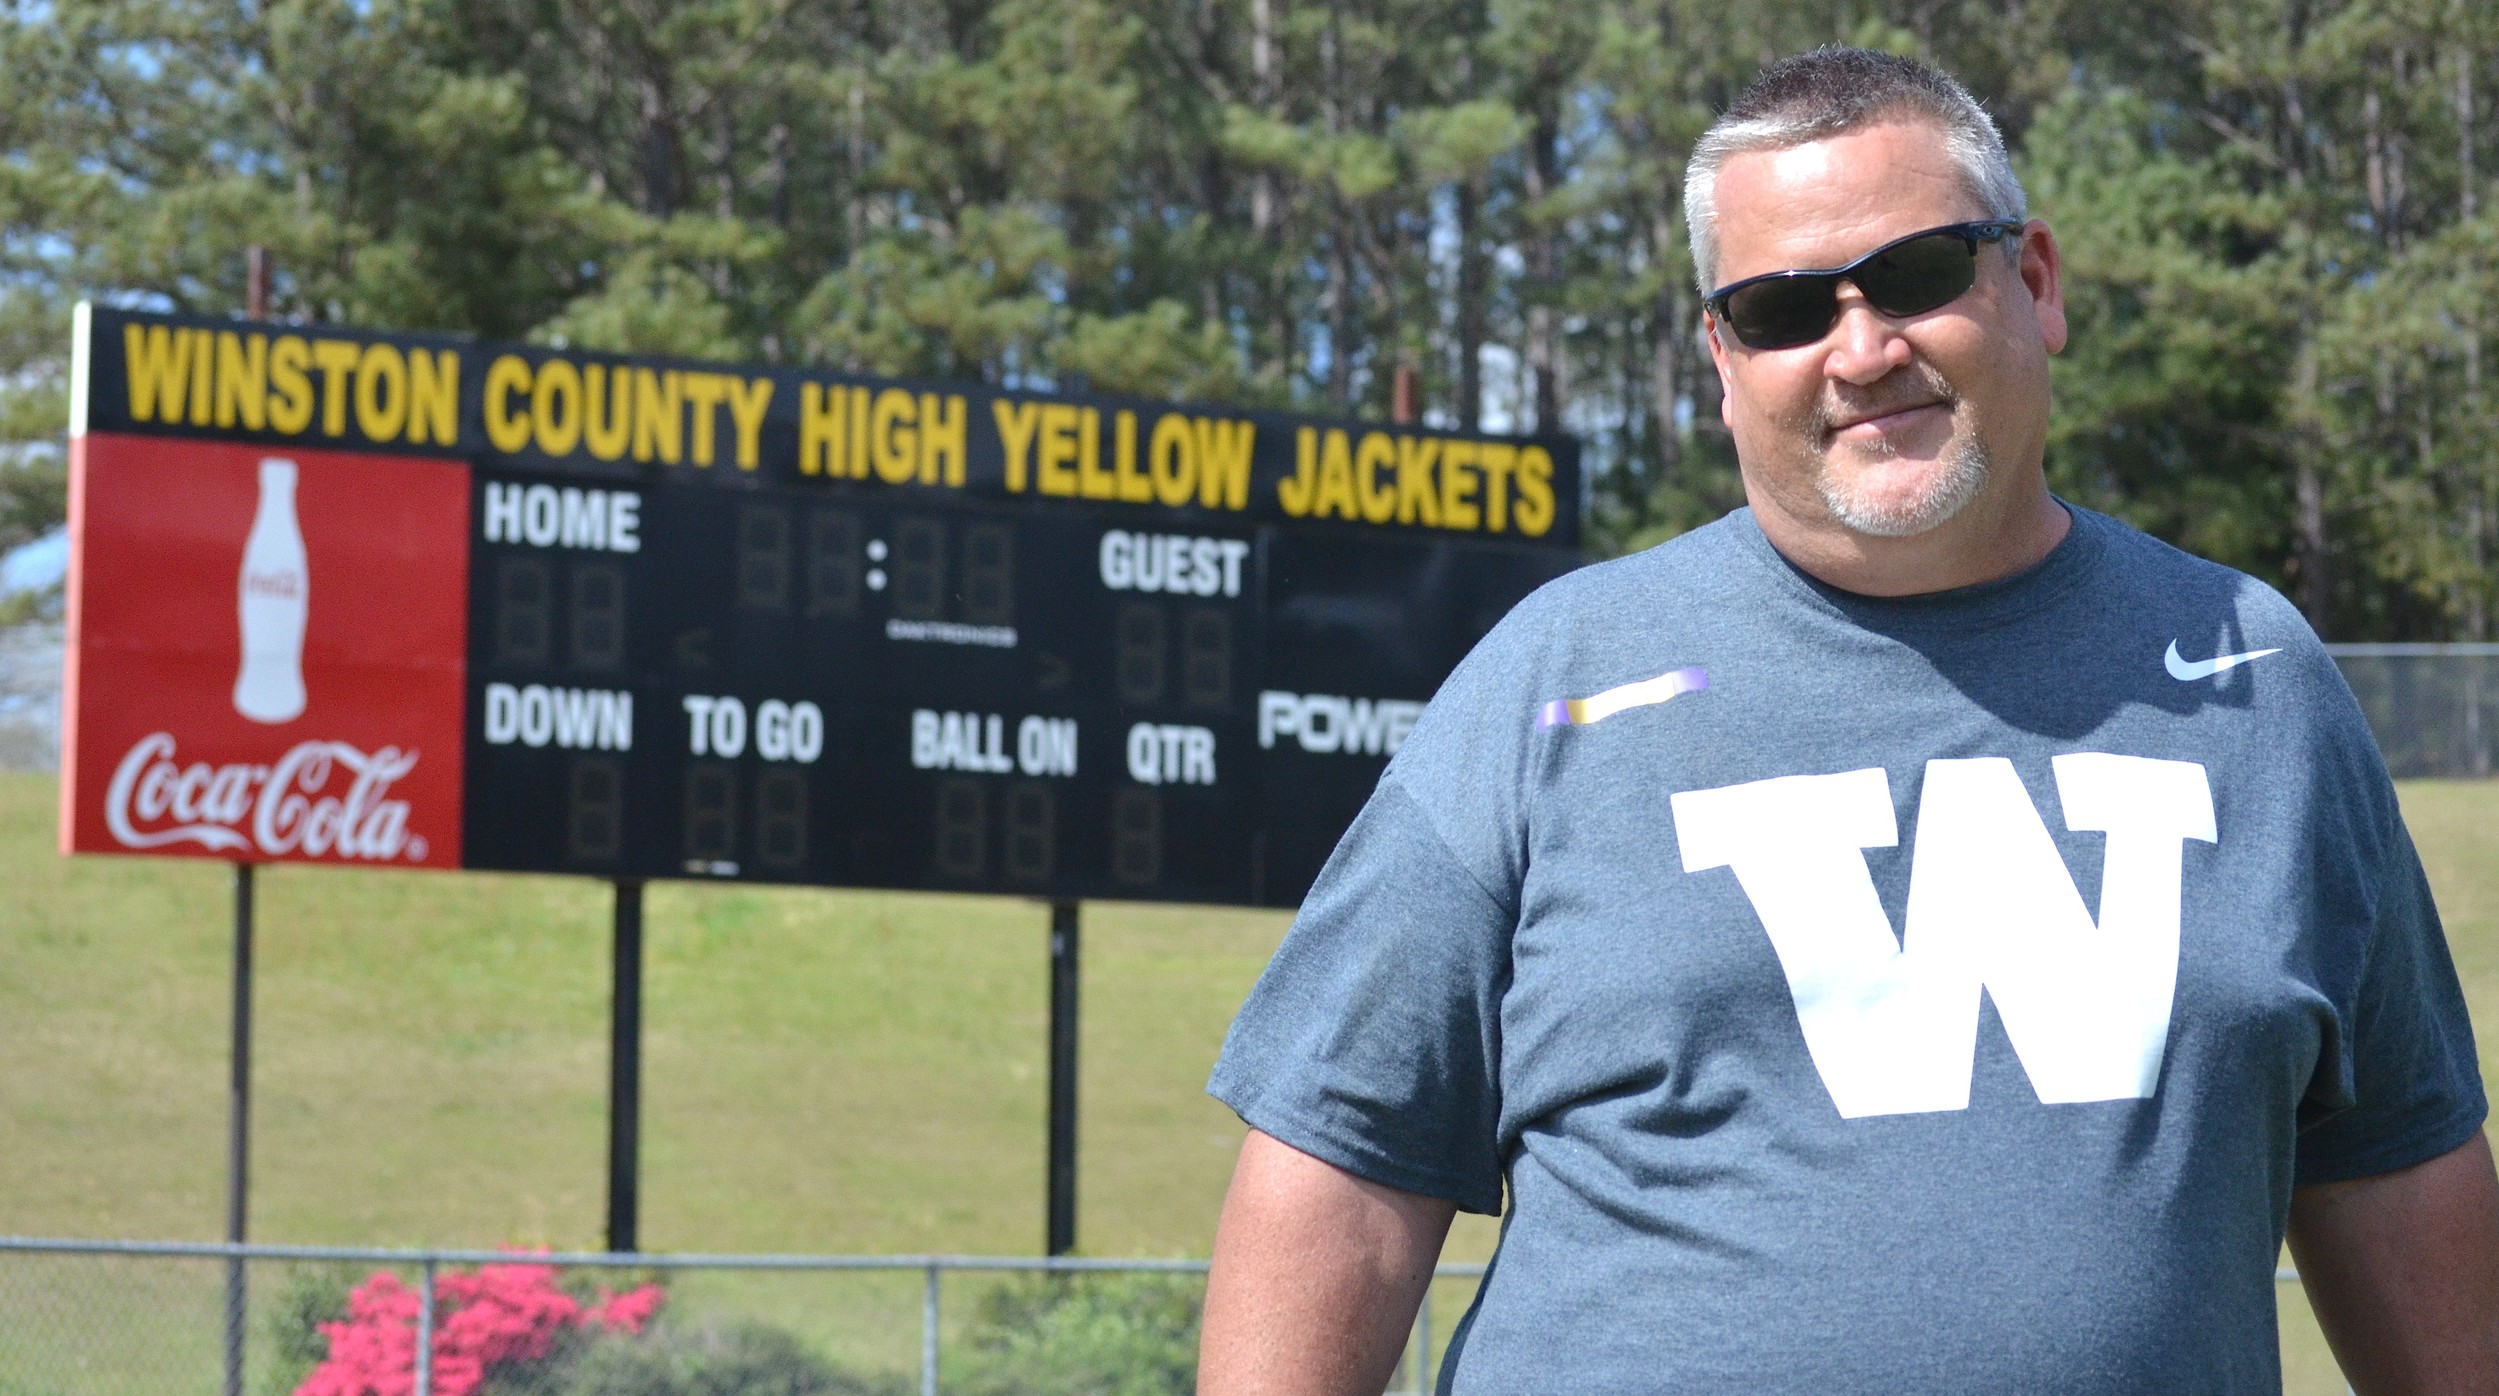 New Winston County coach Mark Mitchell takes over the school's football program after serving as the offensive coordinator at Piedmont High School for the last five years. The Yellow Jackets are coming off back-to-back losing seasons.